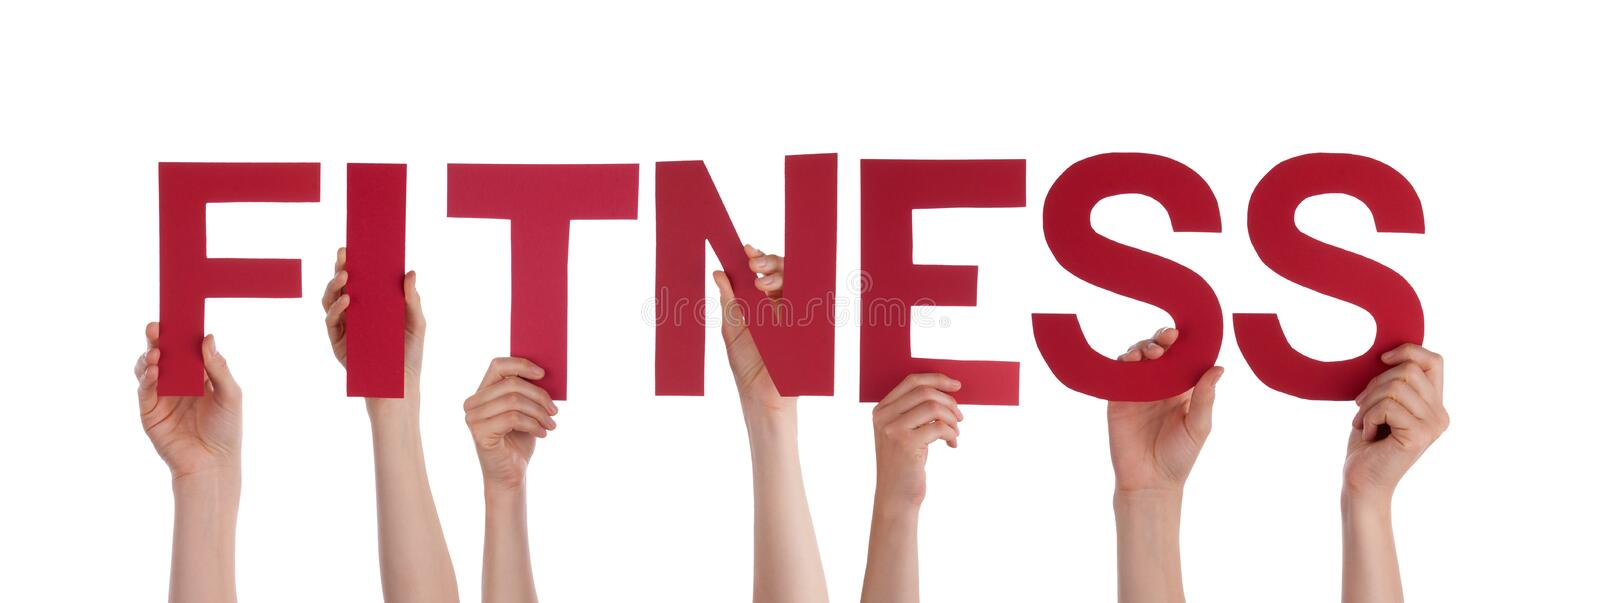 Hands Holding The Word Fitness Stock Photo - Image of healthfullness